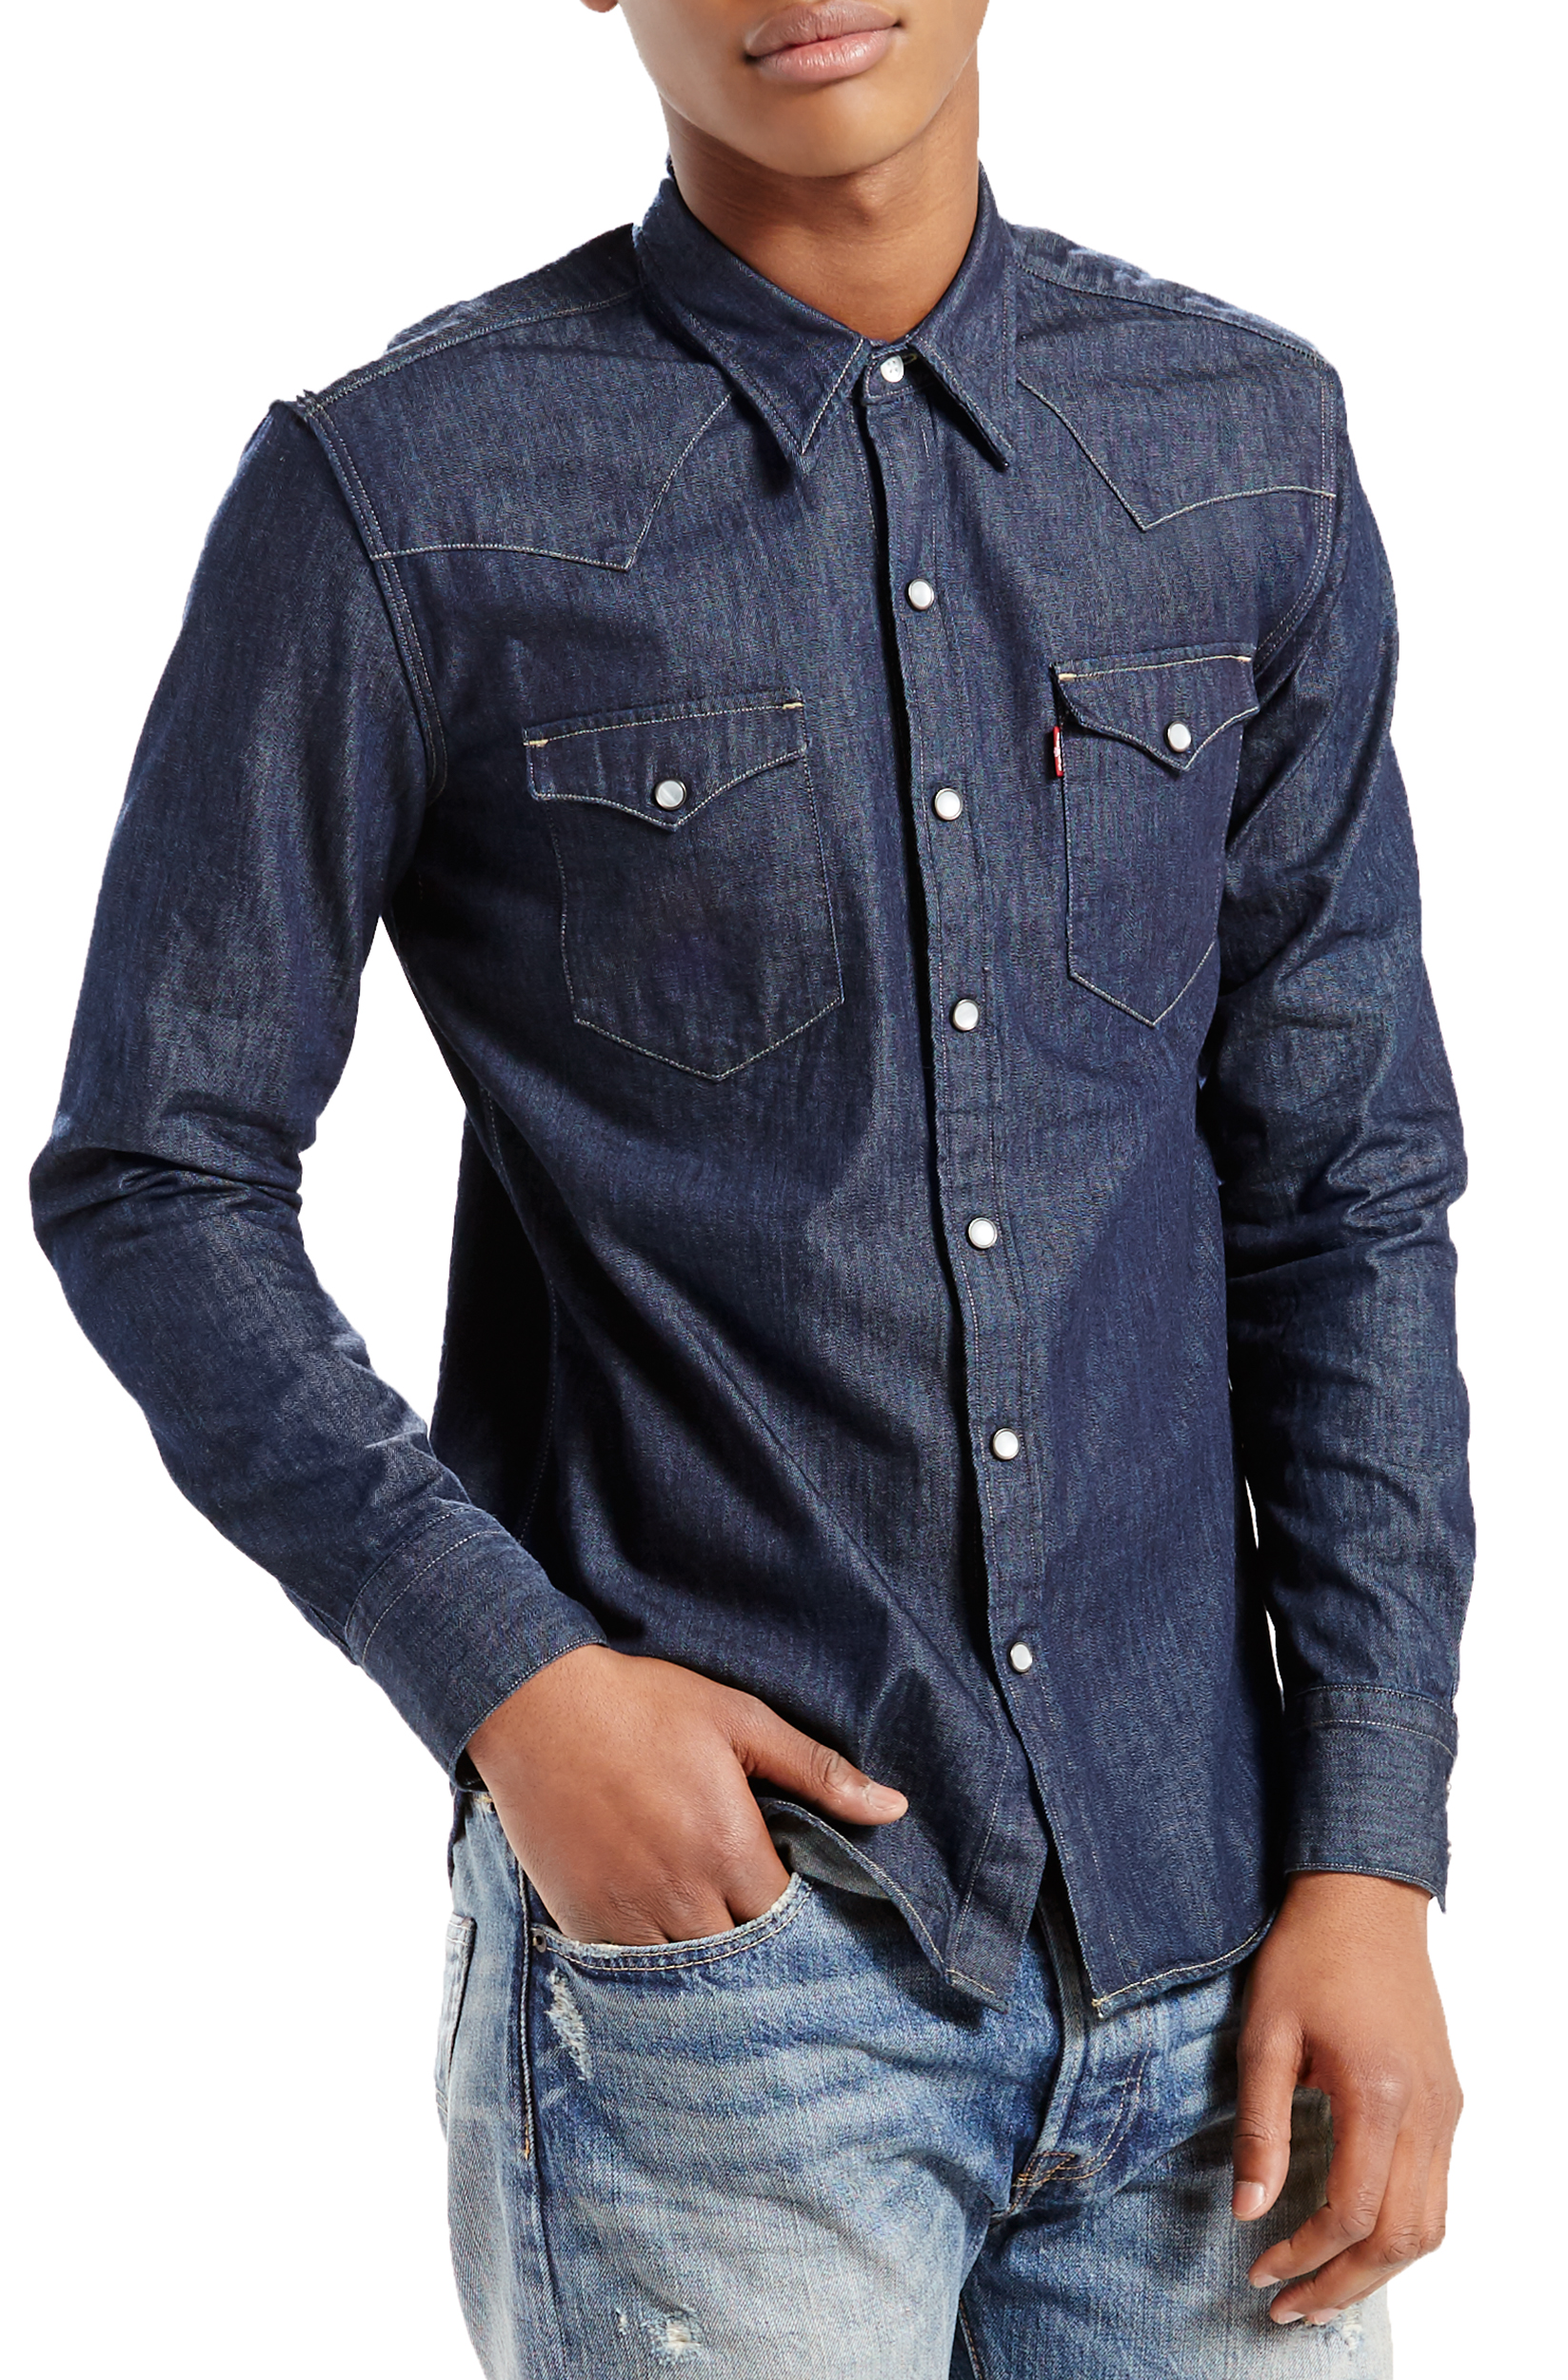 5560ddc731 Click on the Image to Enlarge. More Details. LEVIS Barstow long sleeve  denim shirt ...